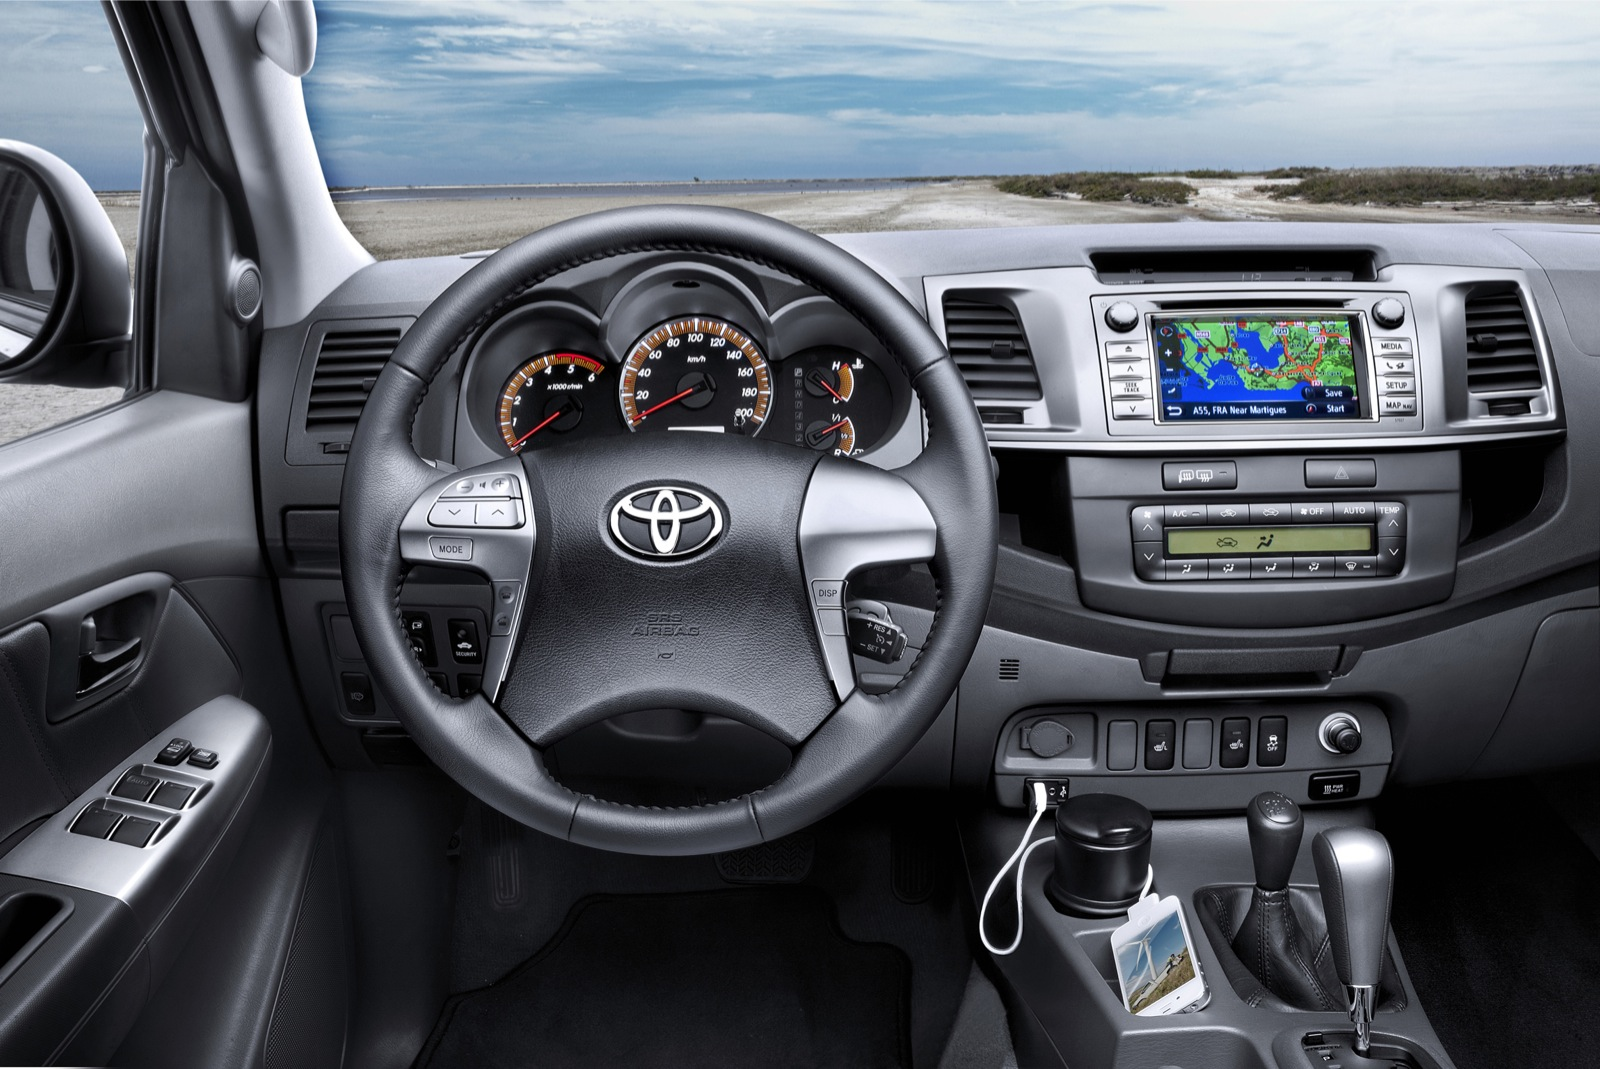 TOYOTA Hilux Extra Cab Photo Gallery #6/11